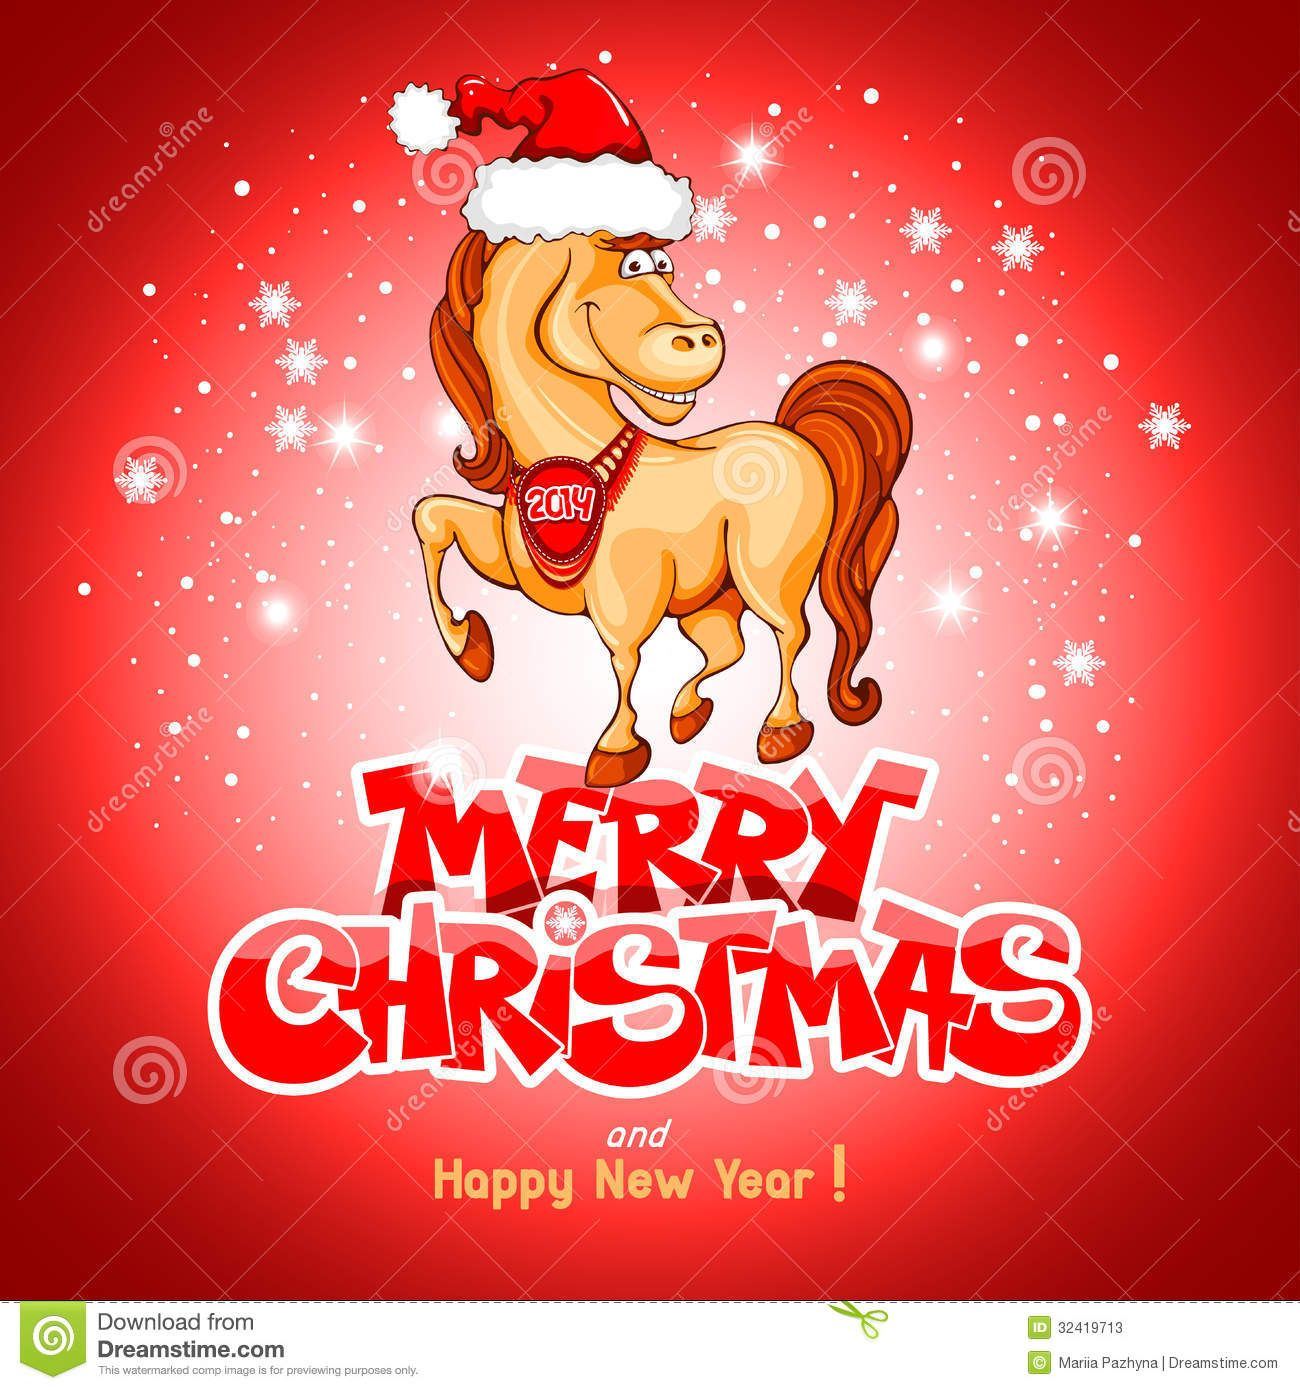 You can download merry christmes greetings card images 2014 here you can download merry christmes greetings card images 2014 hererry christmes greetings card images m4hsunfo Images